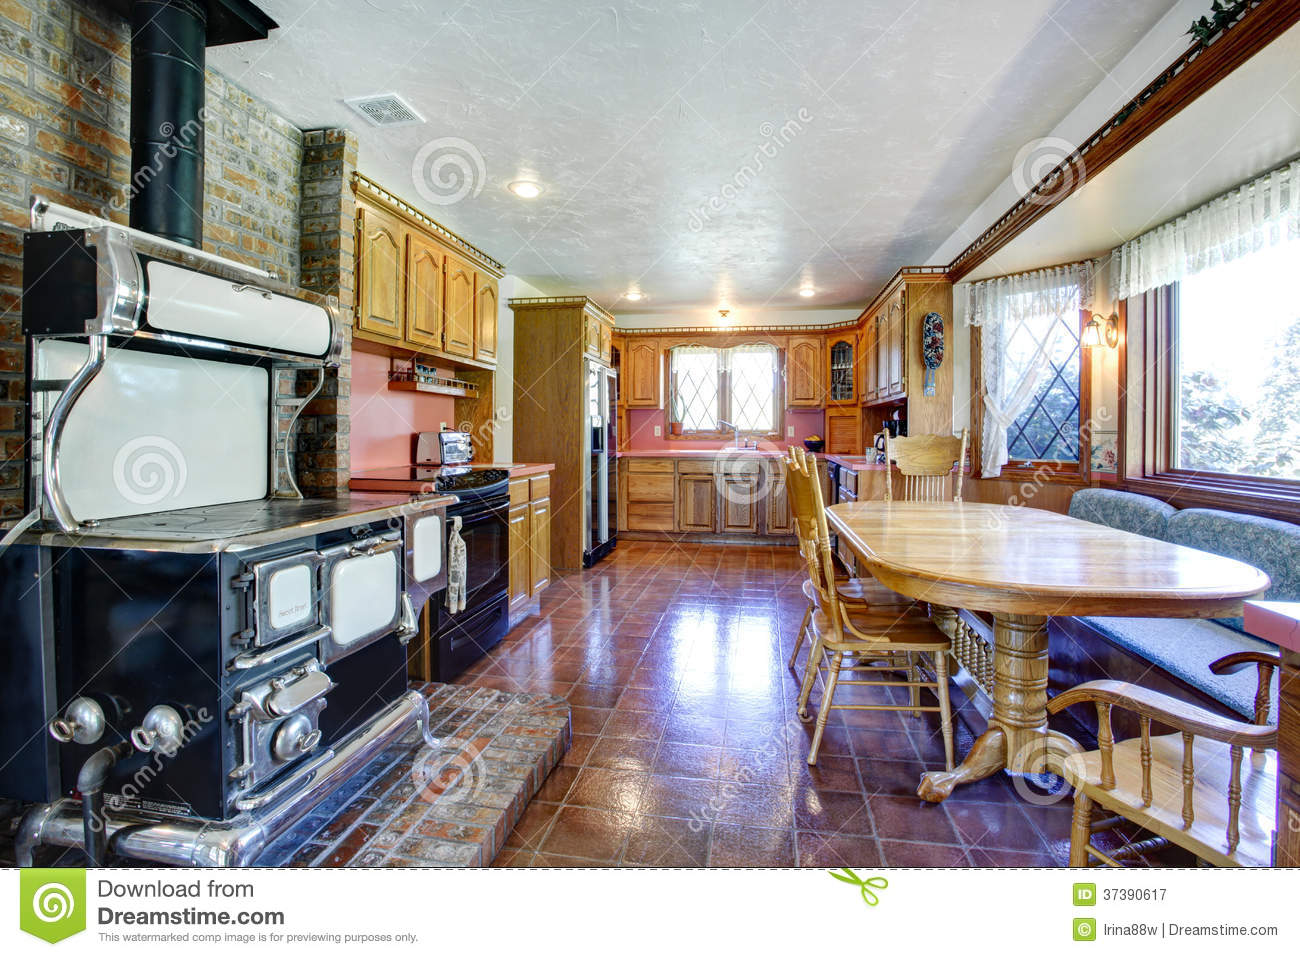 Impressive Farmhouse Kitchen Room With Antique Stove Royalty Free Stock Photography Image